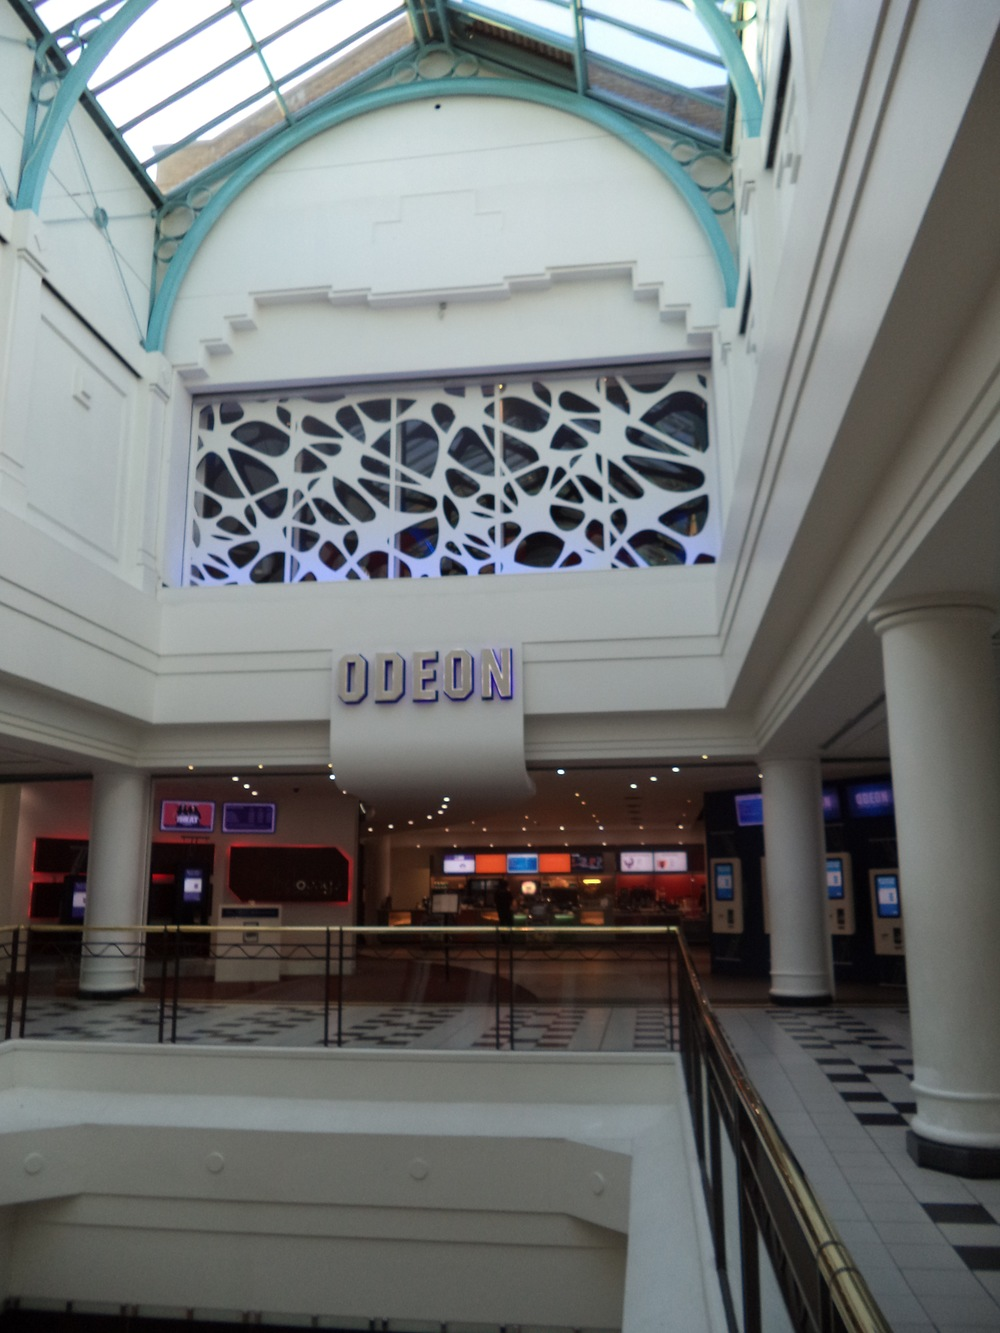 The Odeon in London.